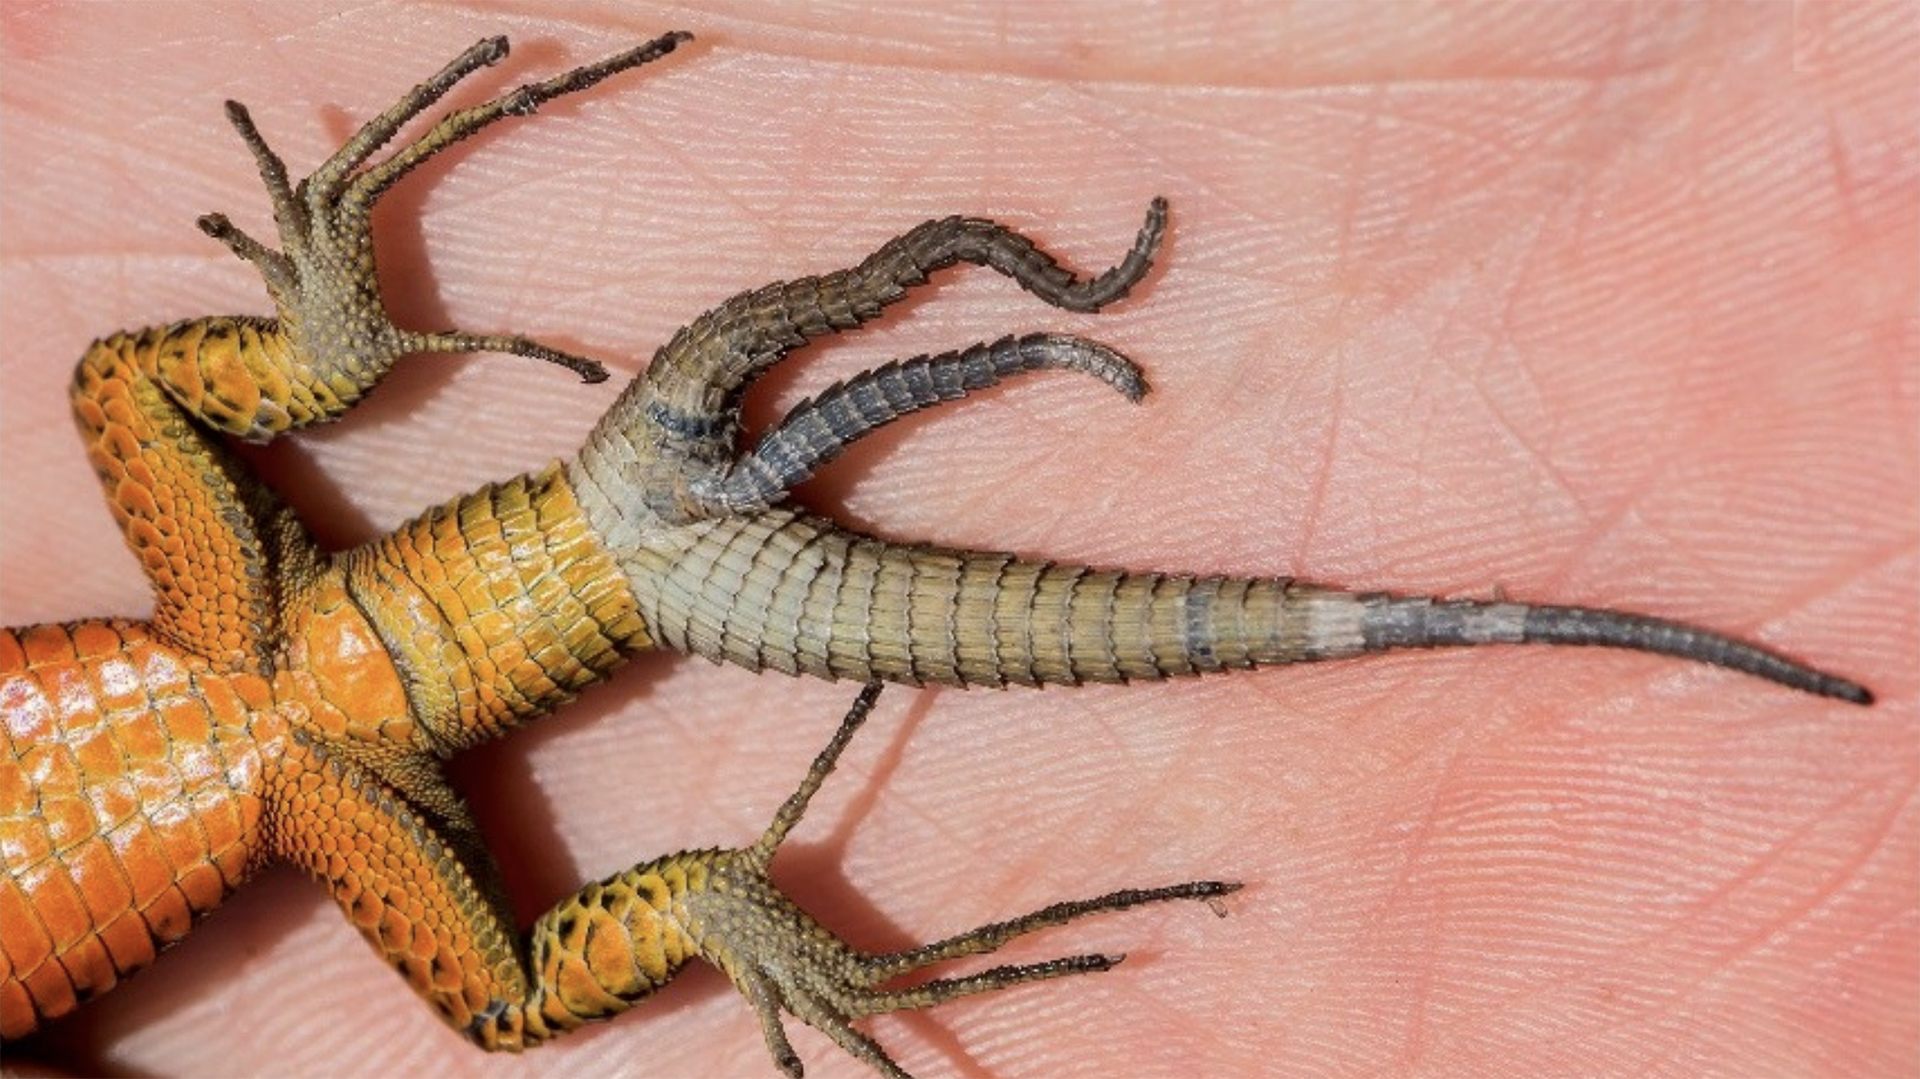 Lizards with multiple tails are more common than anyone knew ...